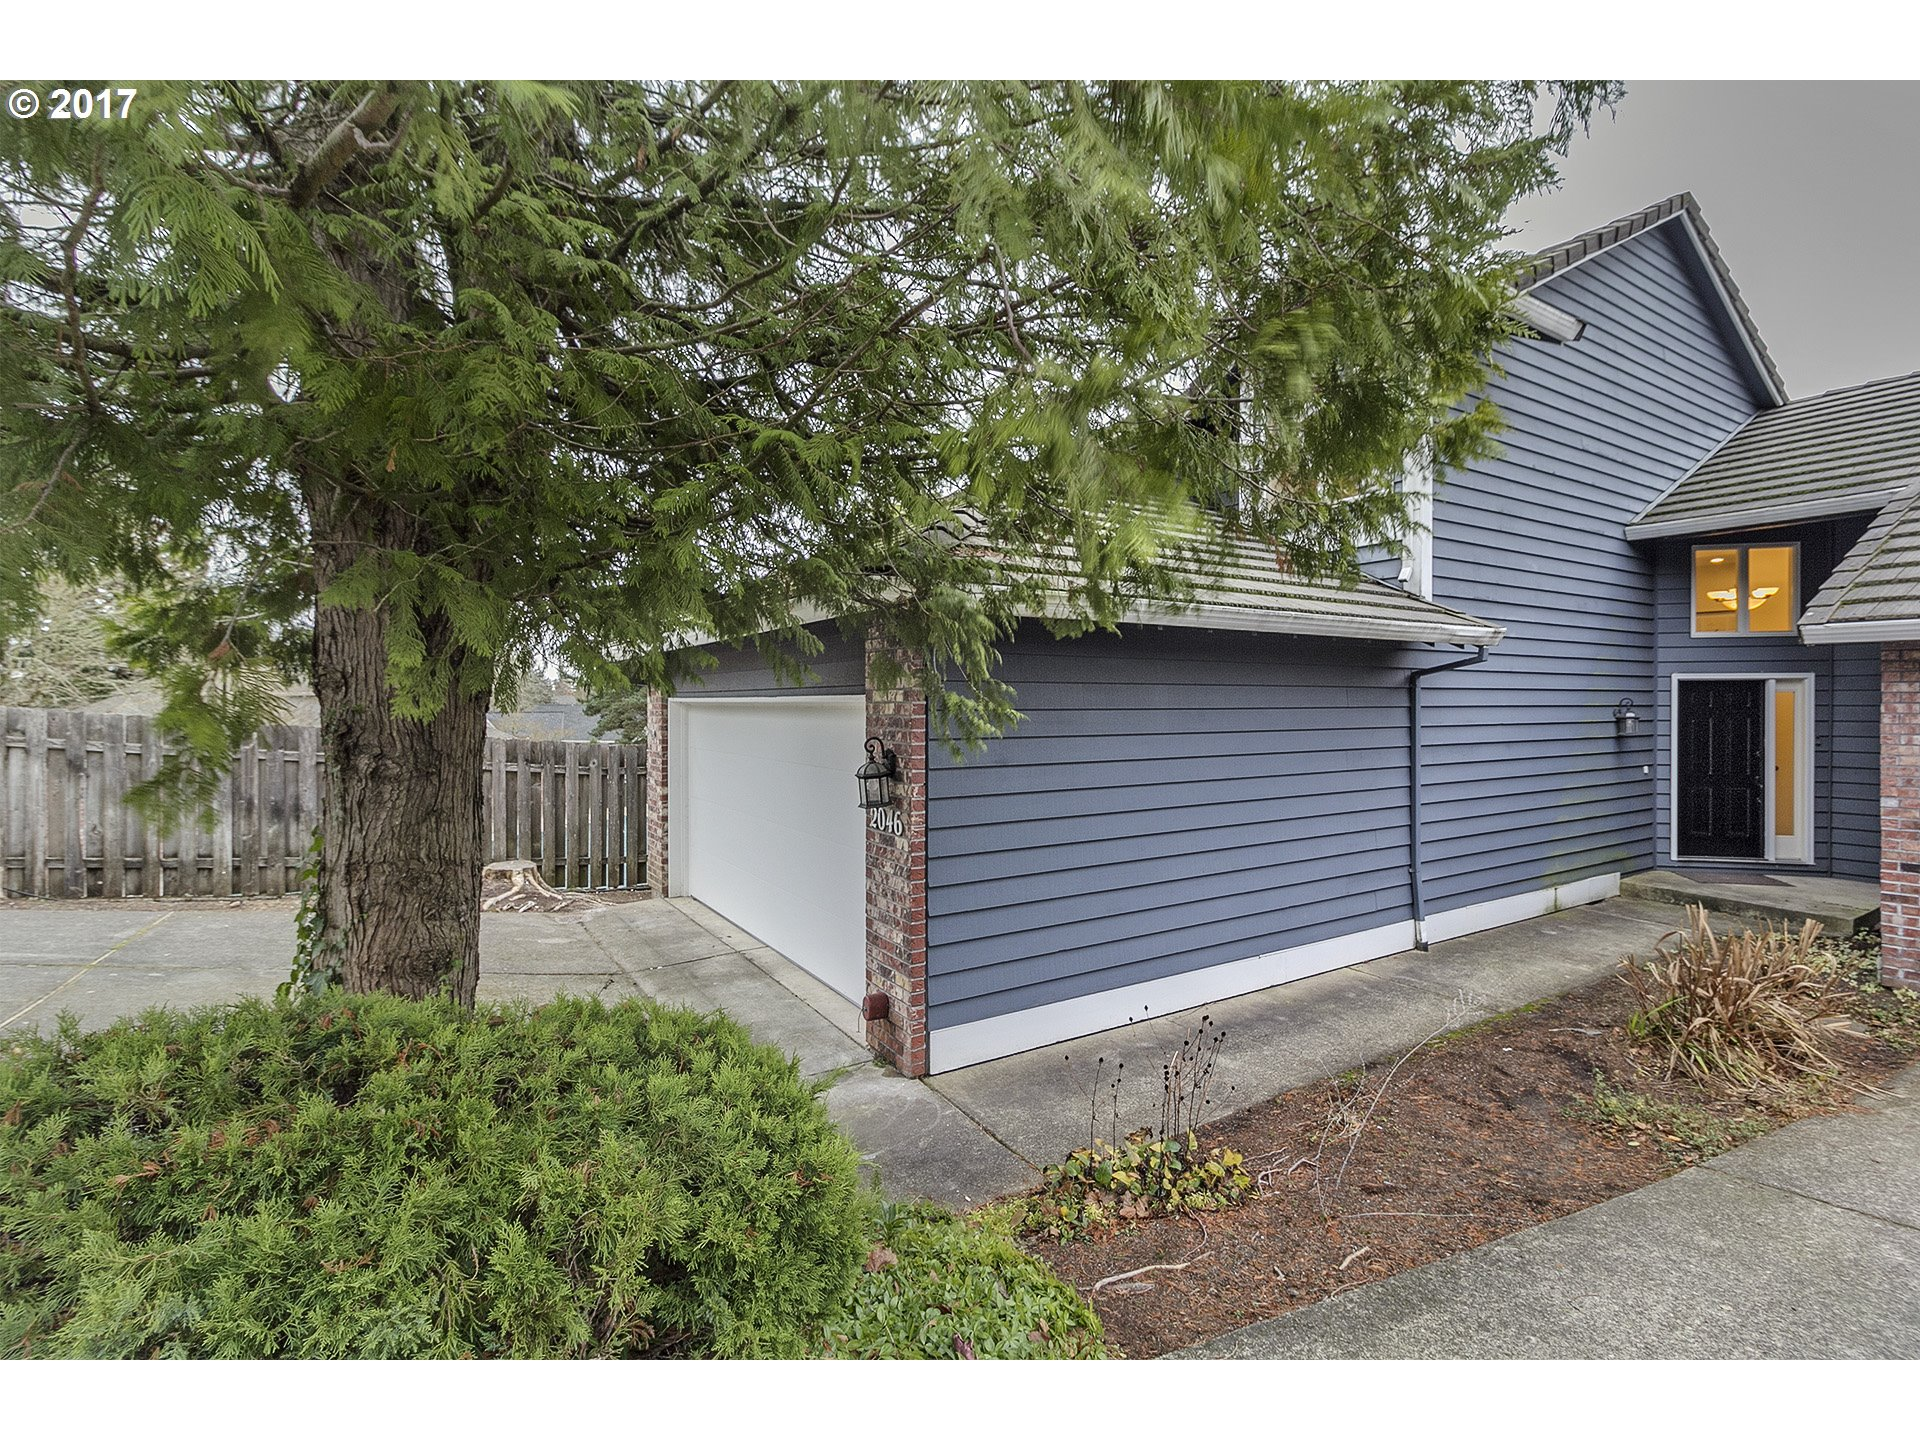 2046 SUNRAY CIR, West Linn, OR 97068